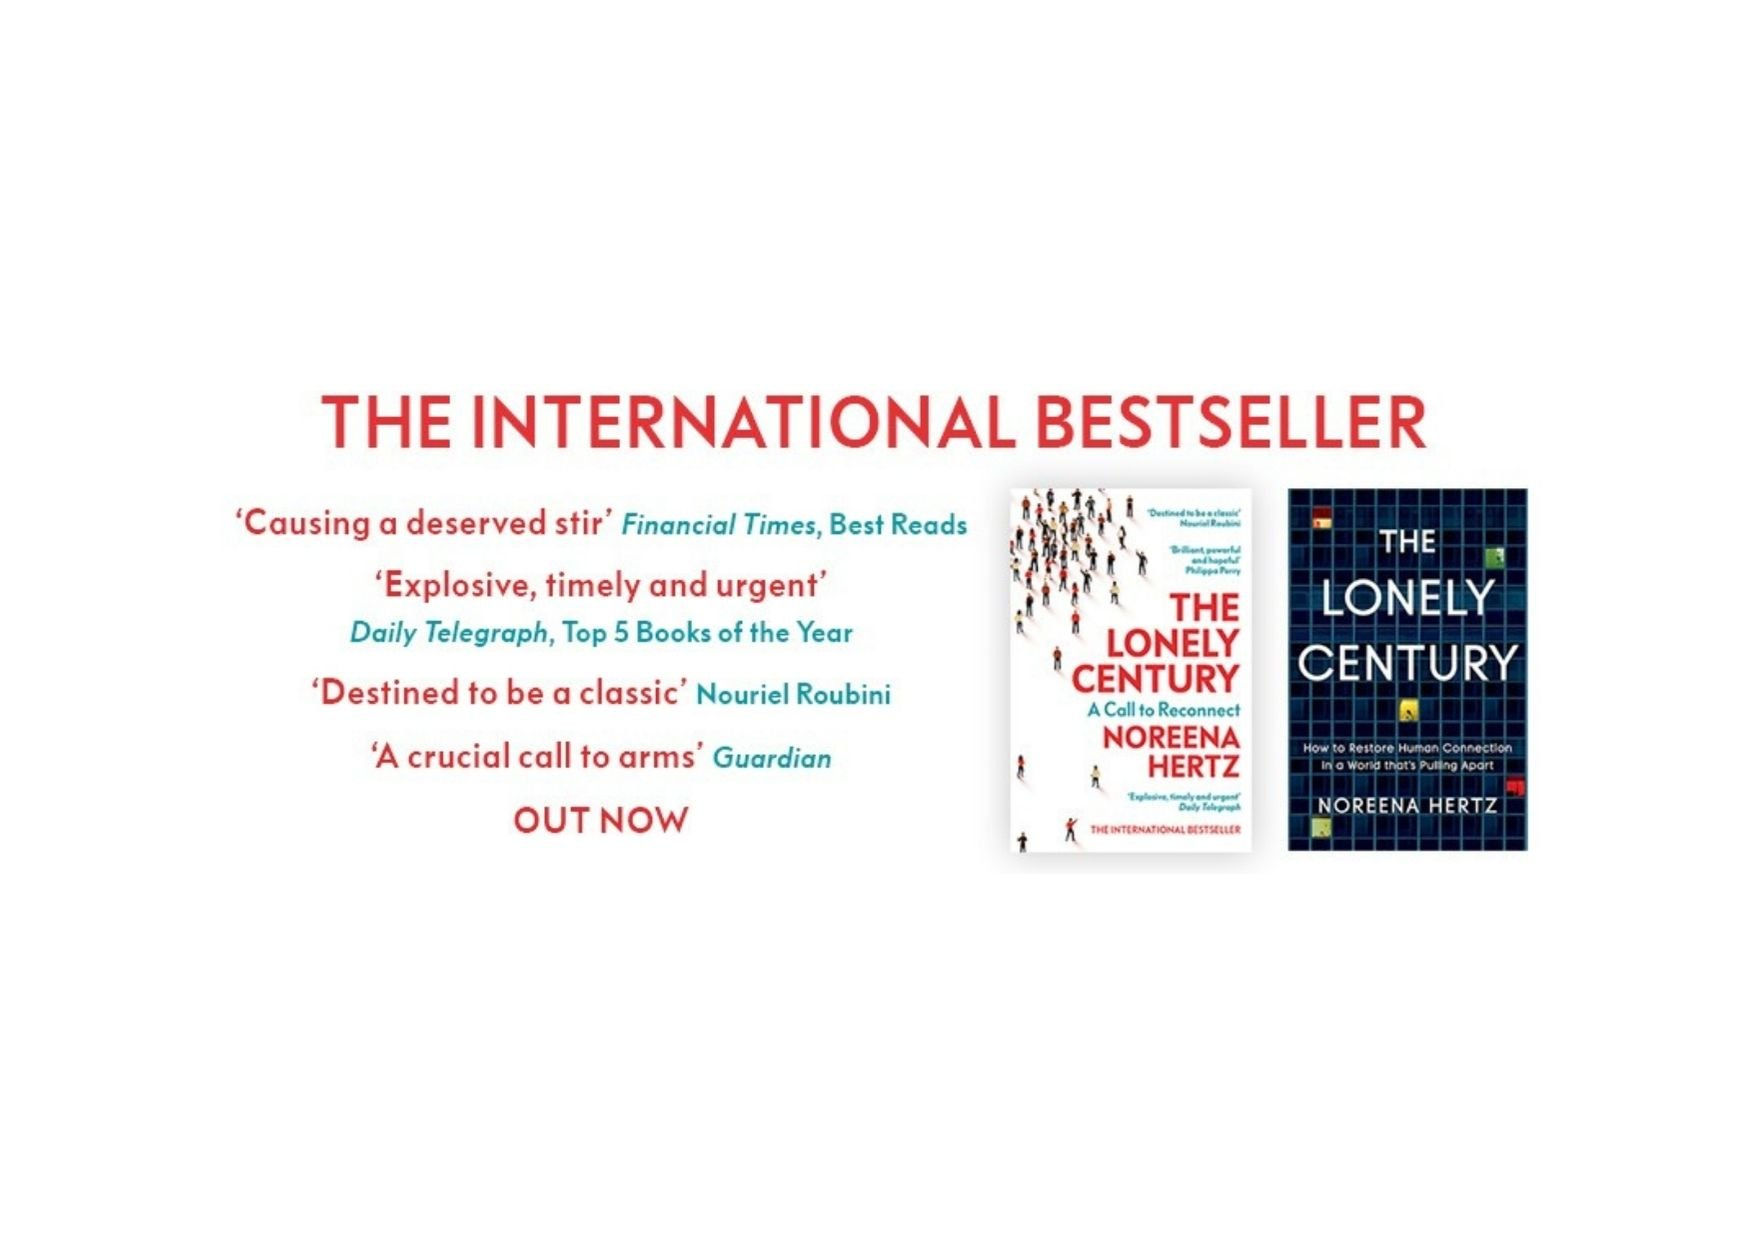 The Lonely Century – OUT NOW IN PAPERBACK